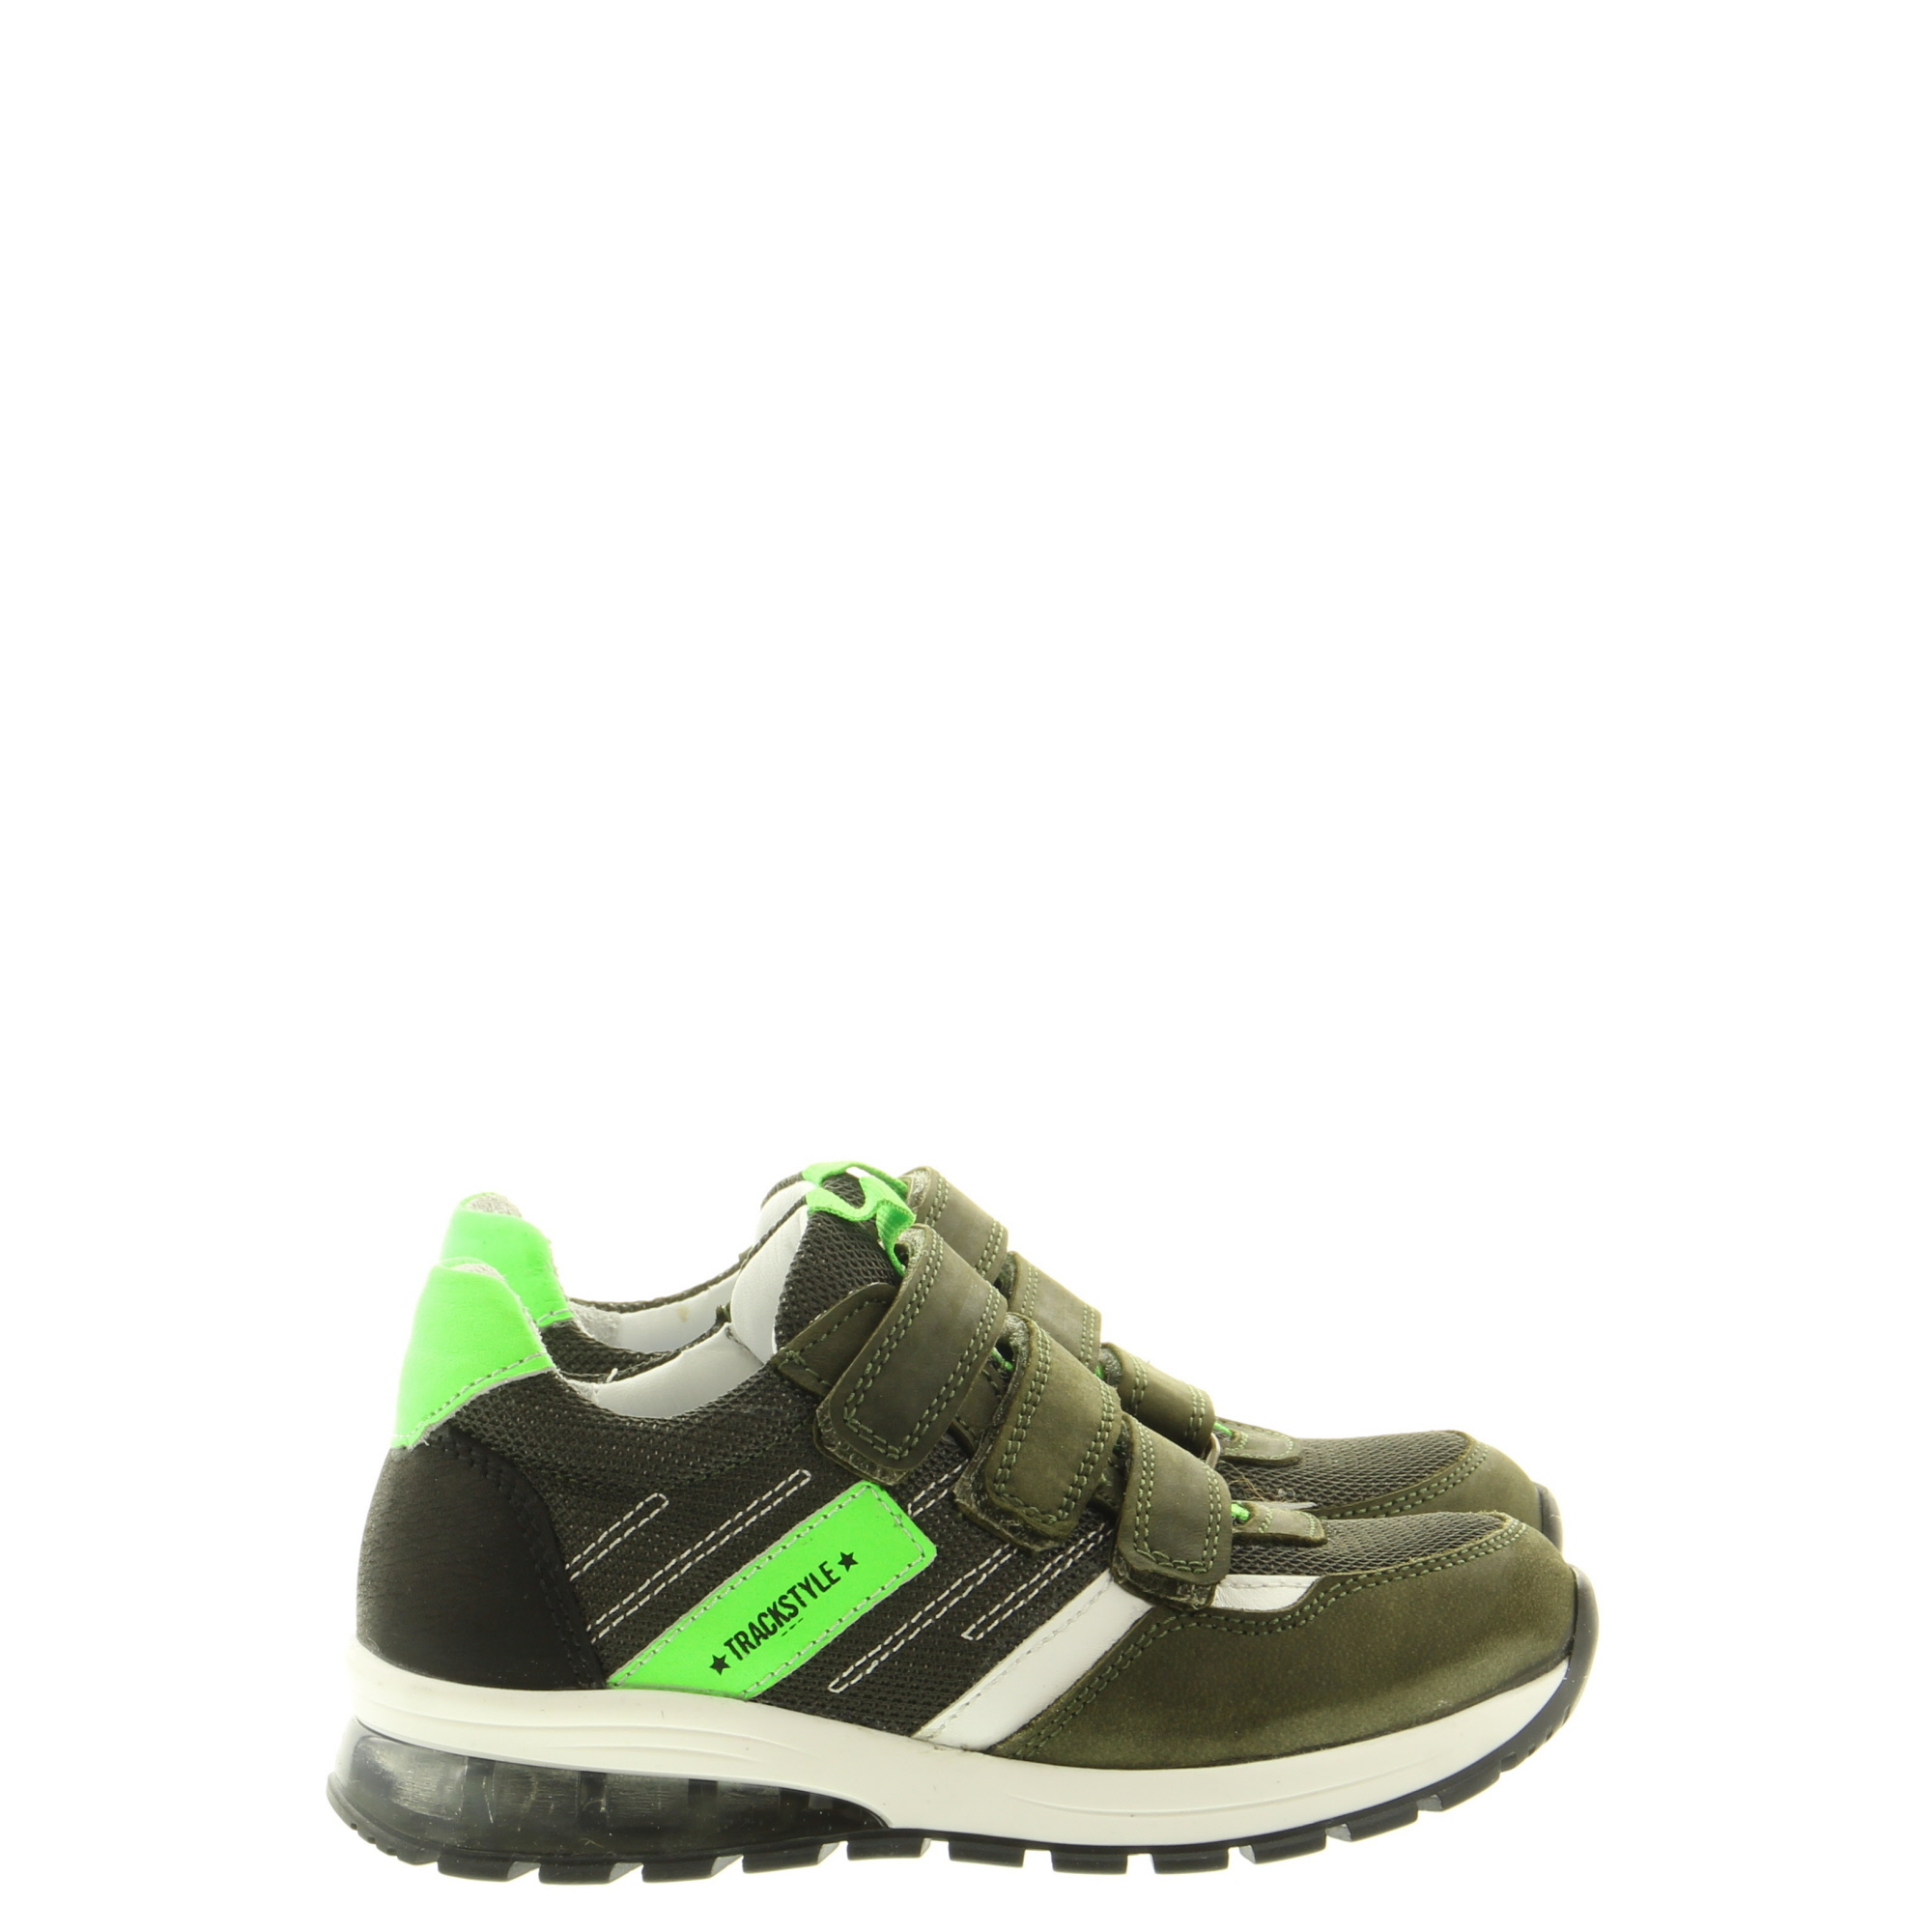 Twins Trackstyle 321351 167 Olive/Green